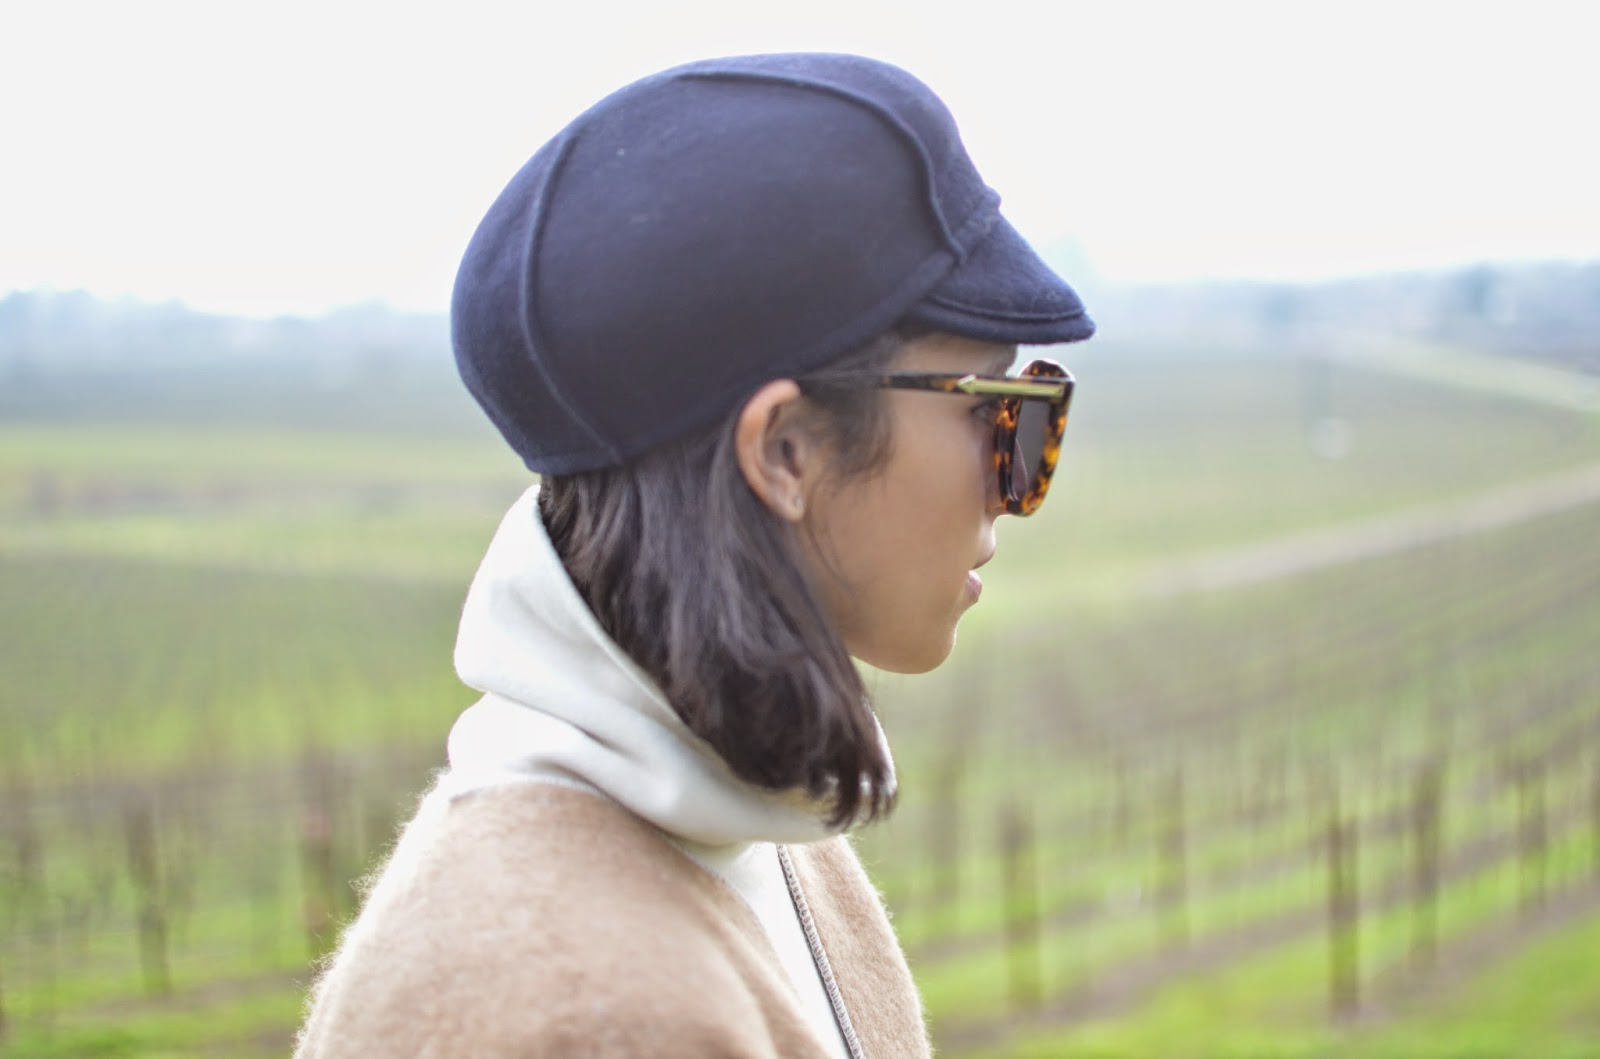 wine country chic, french girl hat, karen walker super sunglasses, short haircut, lob haircut